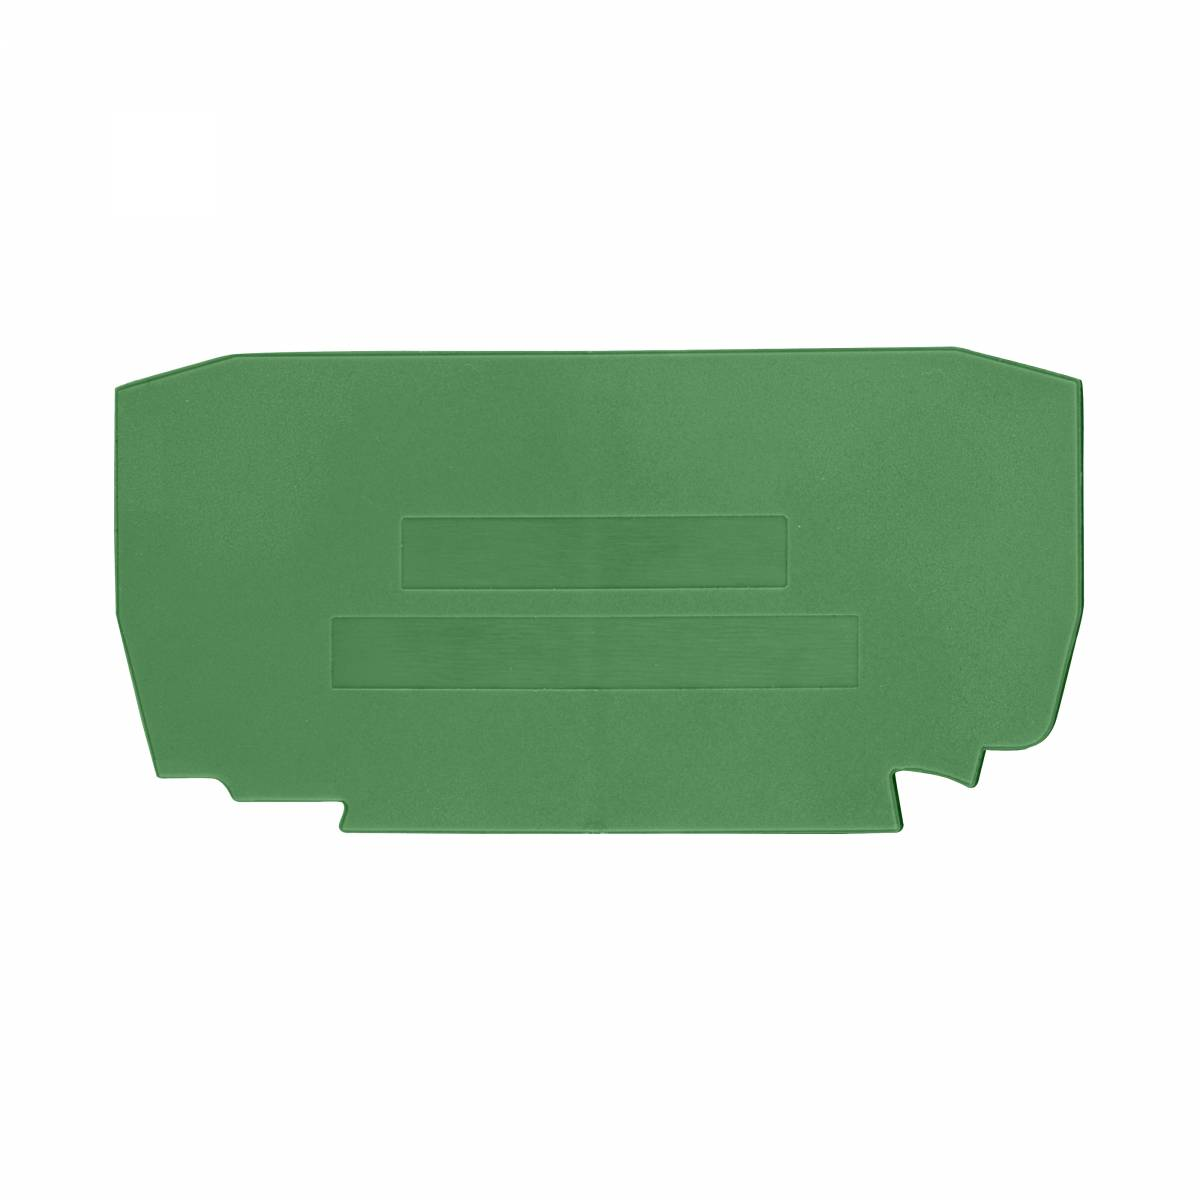 End plate for spring clamp terminal YBK 4 T green